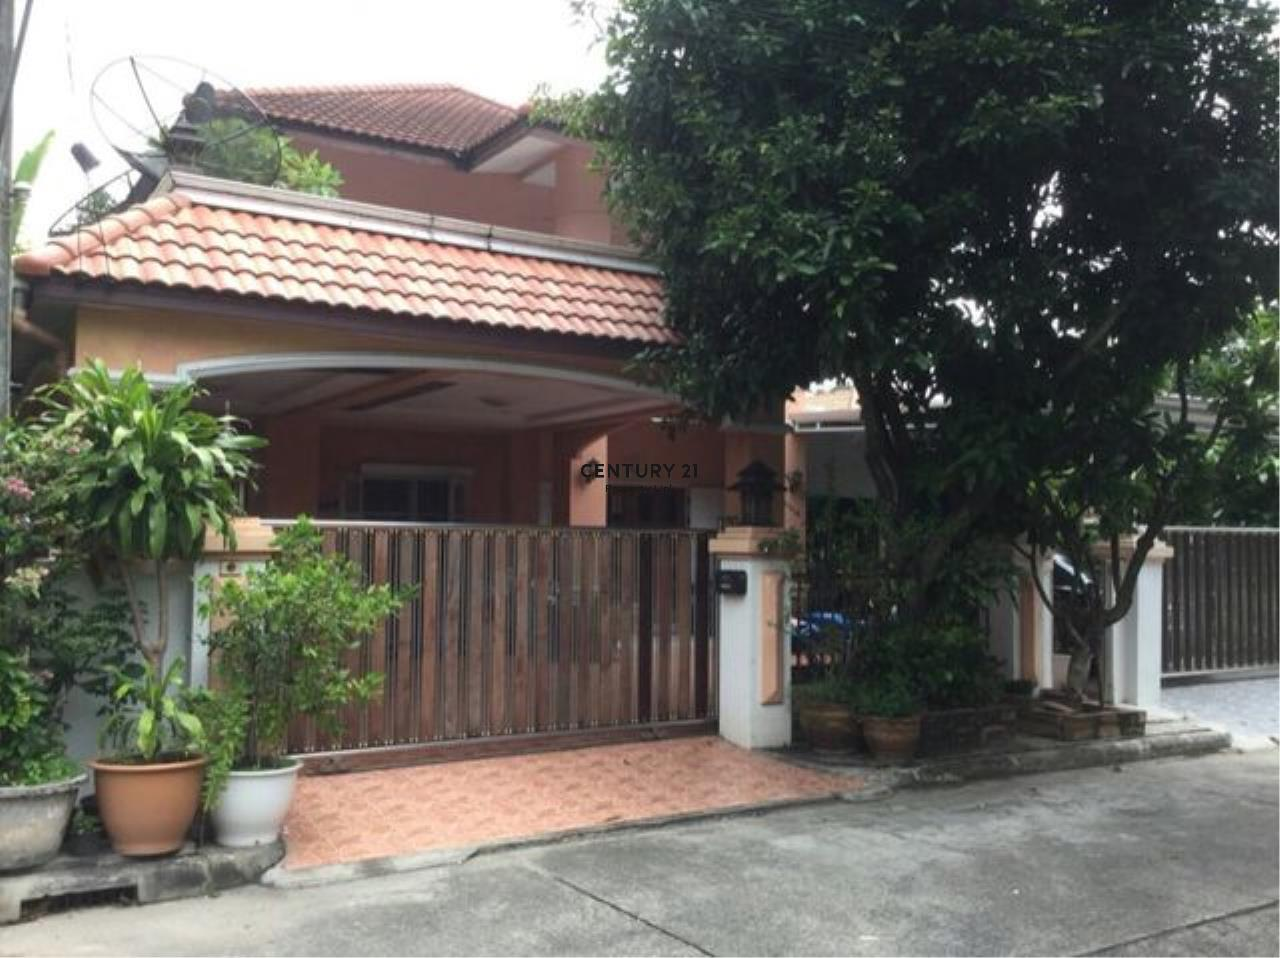 Century21 Property Link Agency's 38-HH-61063 Single House for sale @Nonthaburi  3